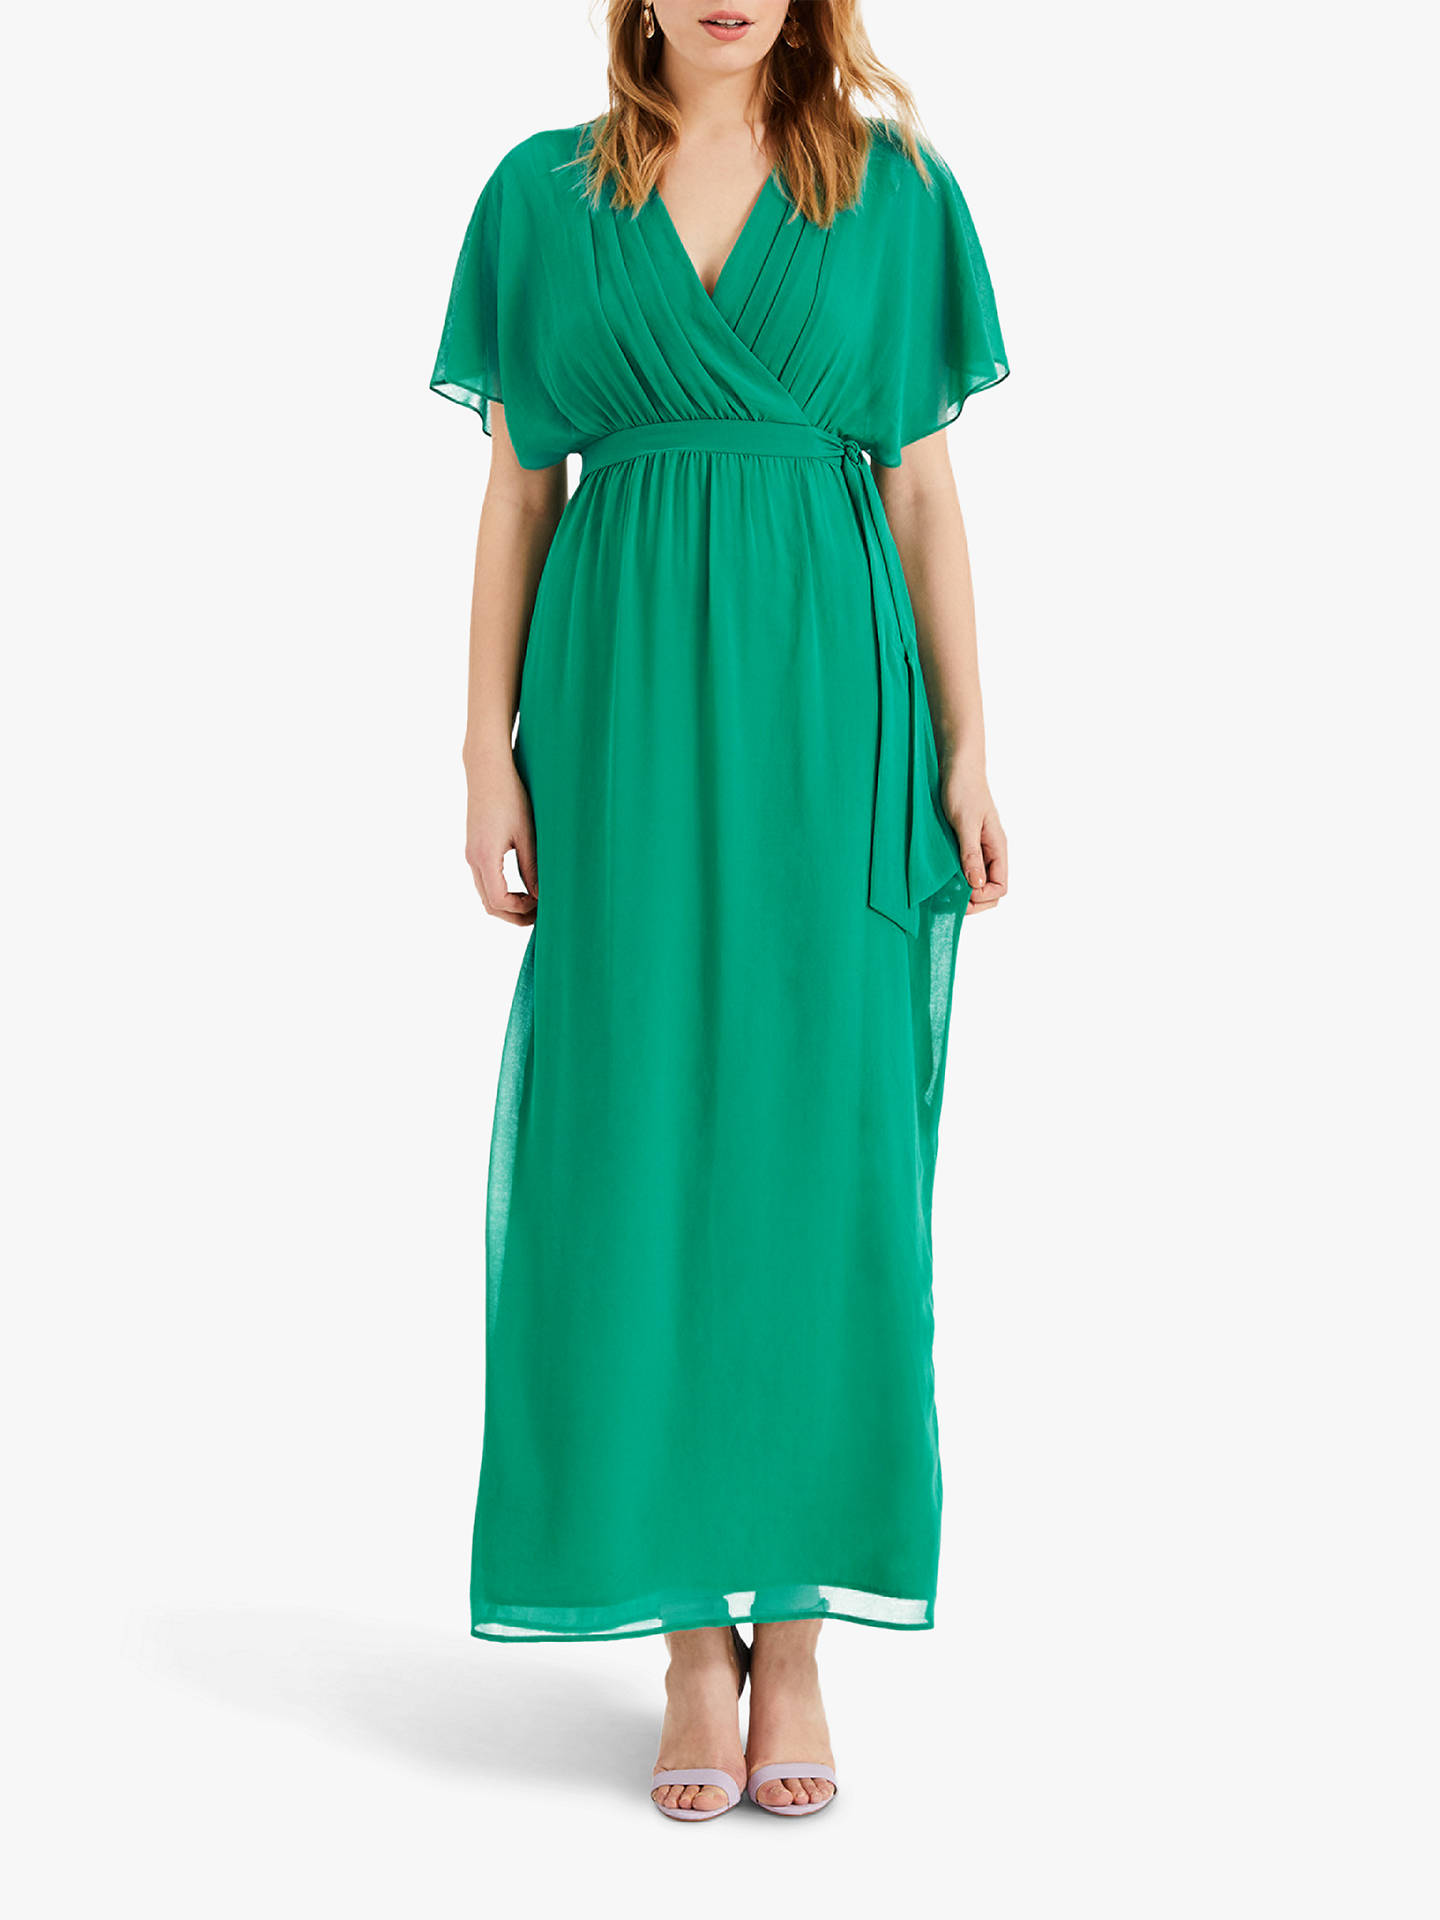 1f6eab3e2d Buy Phase Eight Hyria Chiffon Maxi Dress, Shamrock, 8 Online at  johnlewis.com ...